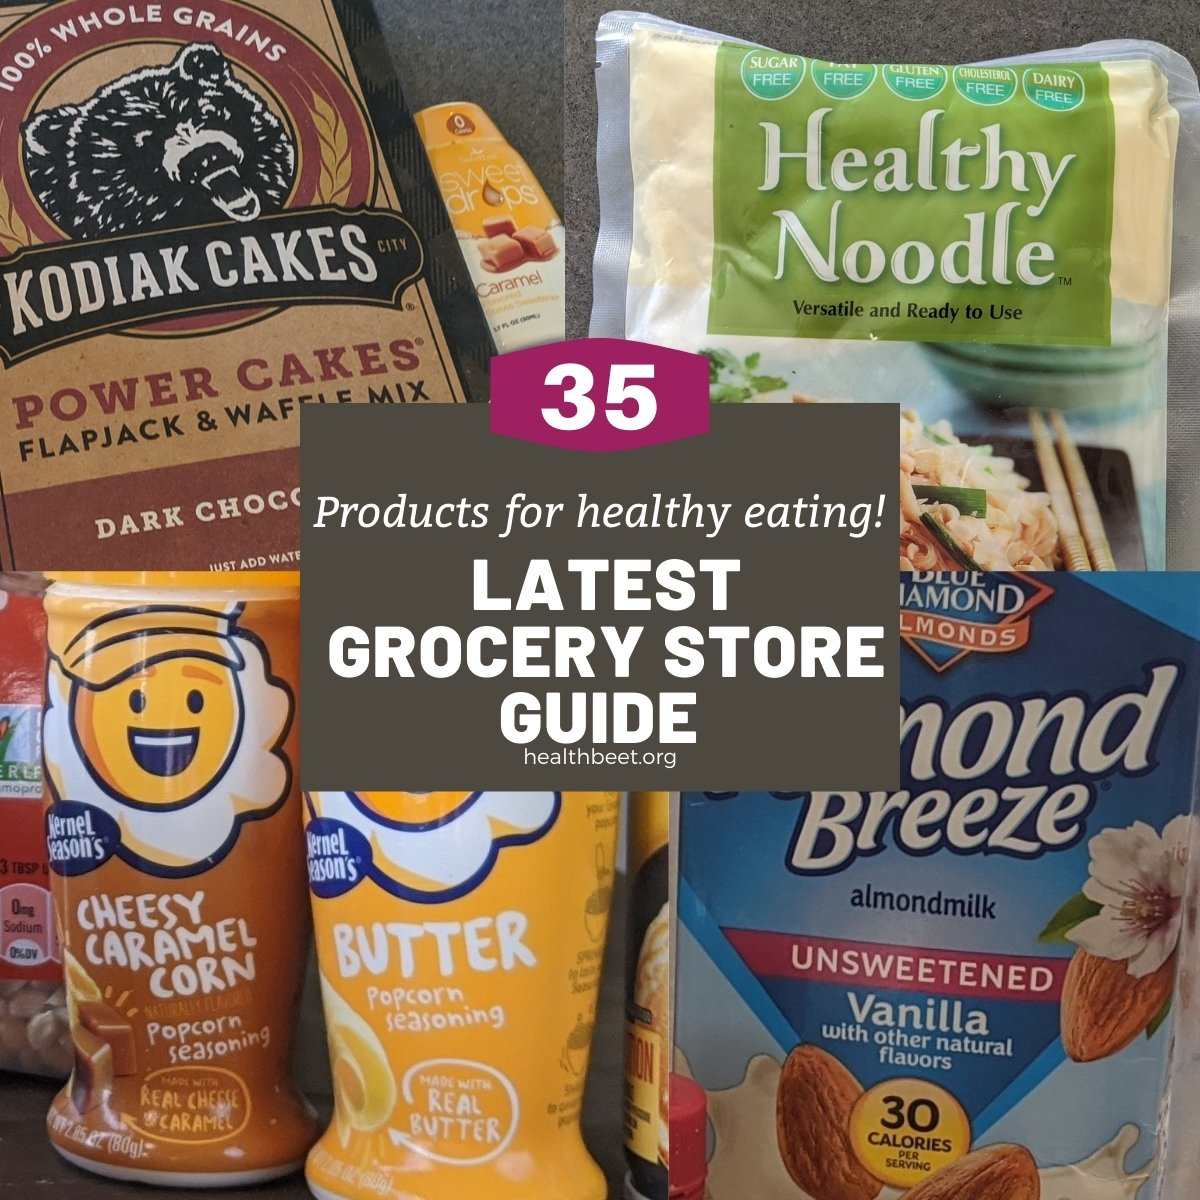 Latest grocery store guide for healthy eating